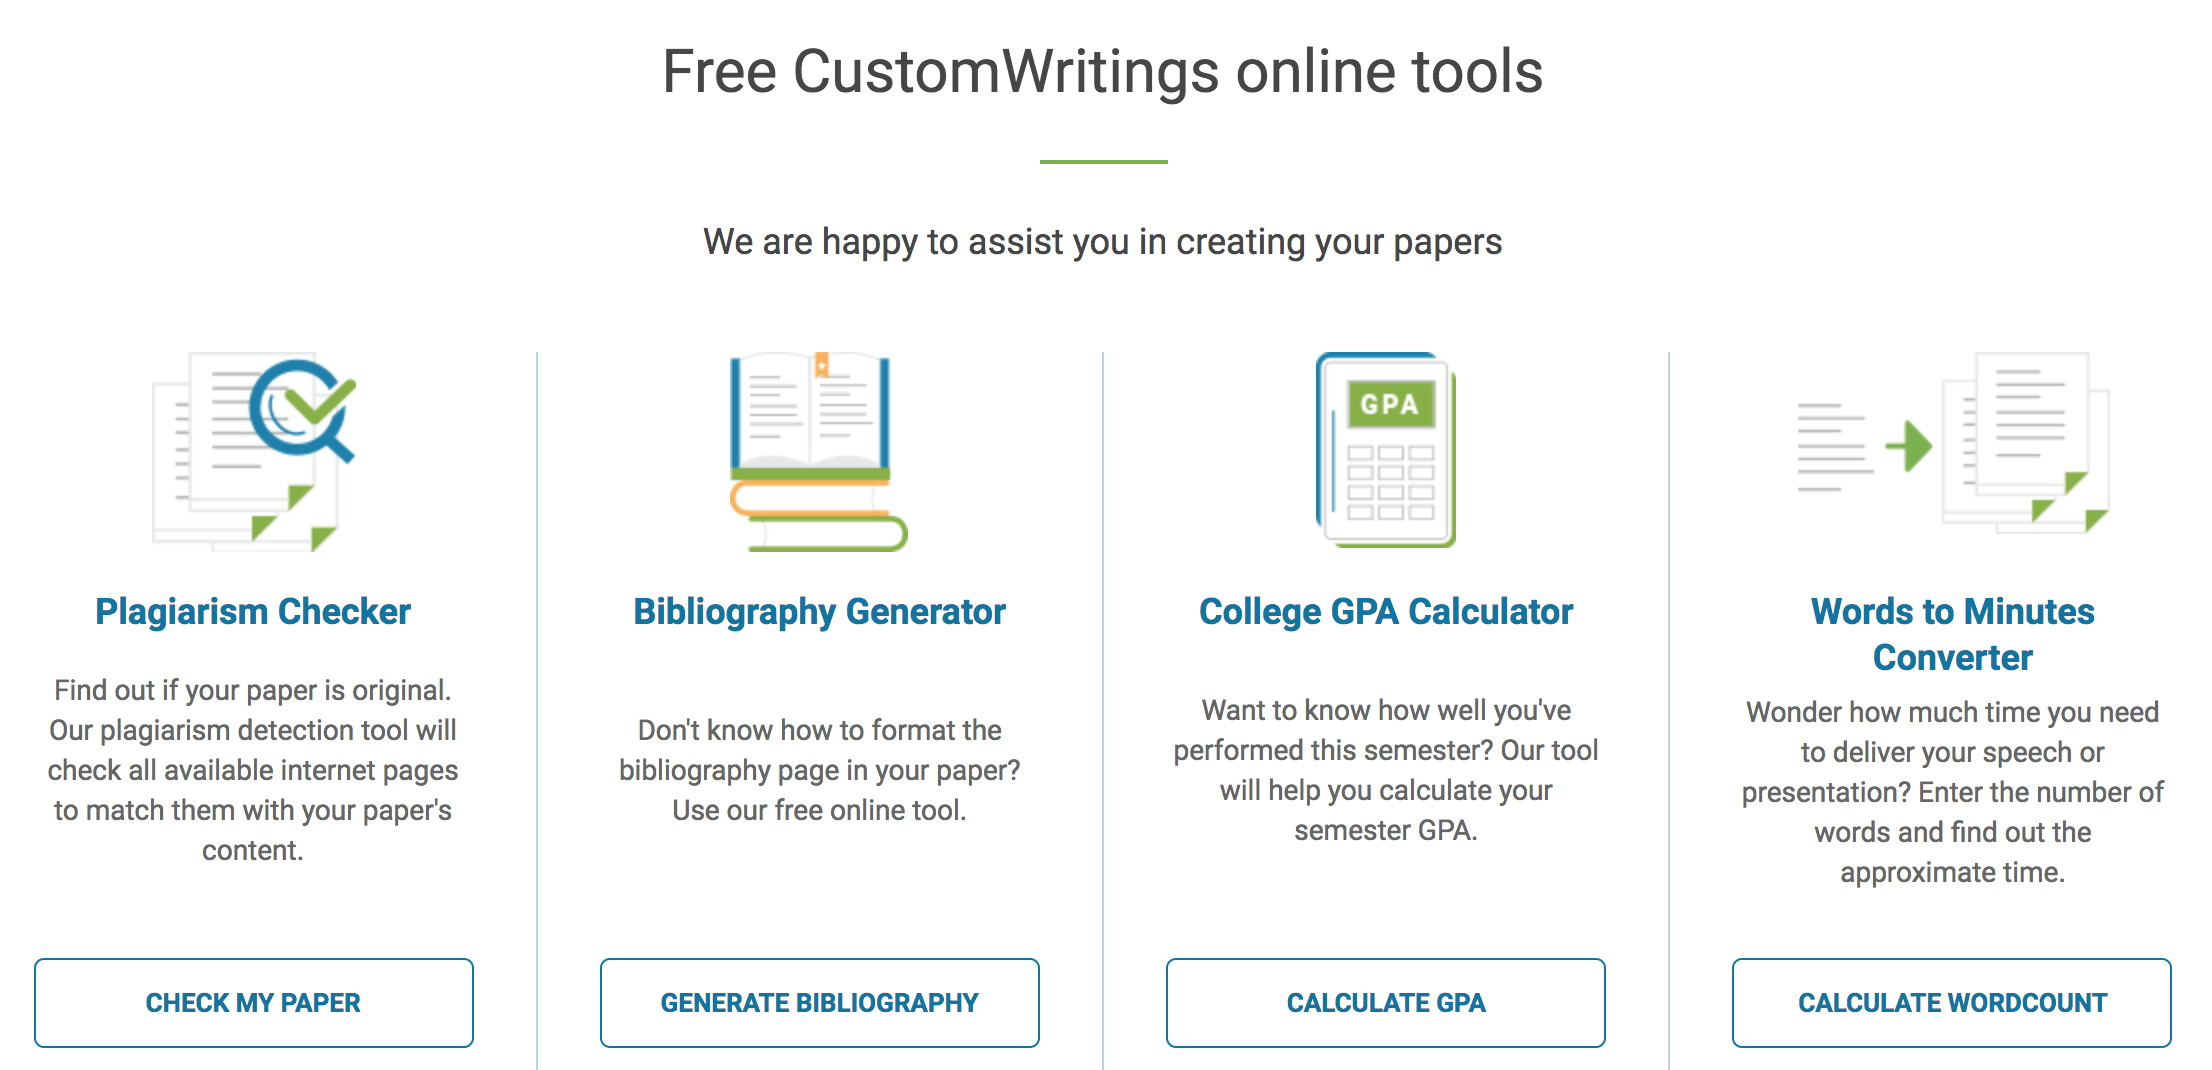 CustomWritings' free tools include a plagiarism checker, a words to minutes calculator, and more